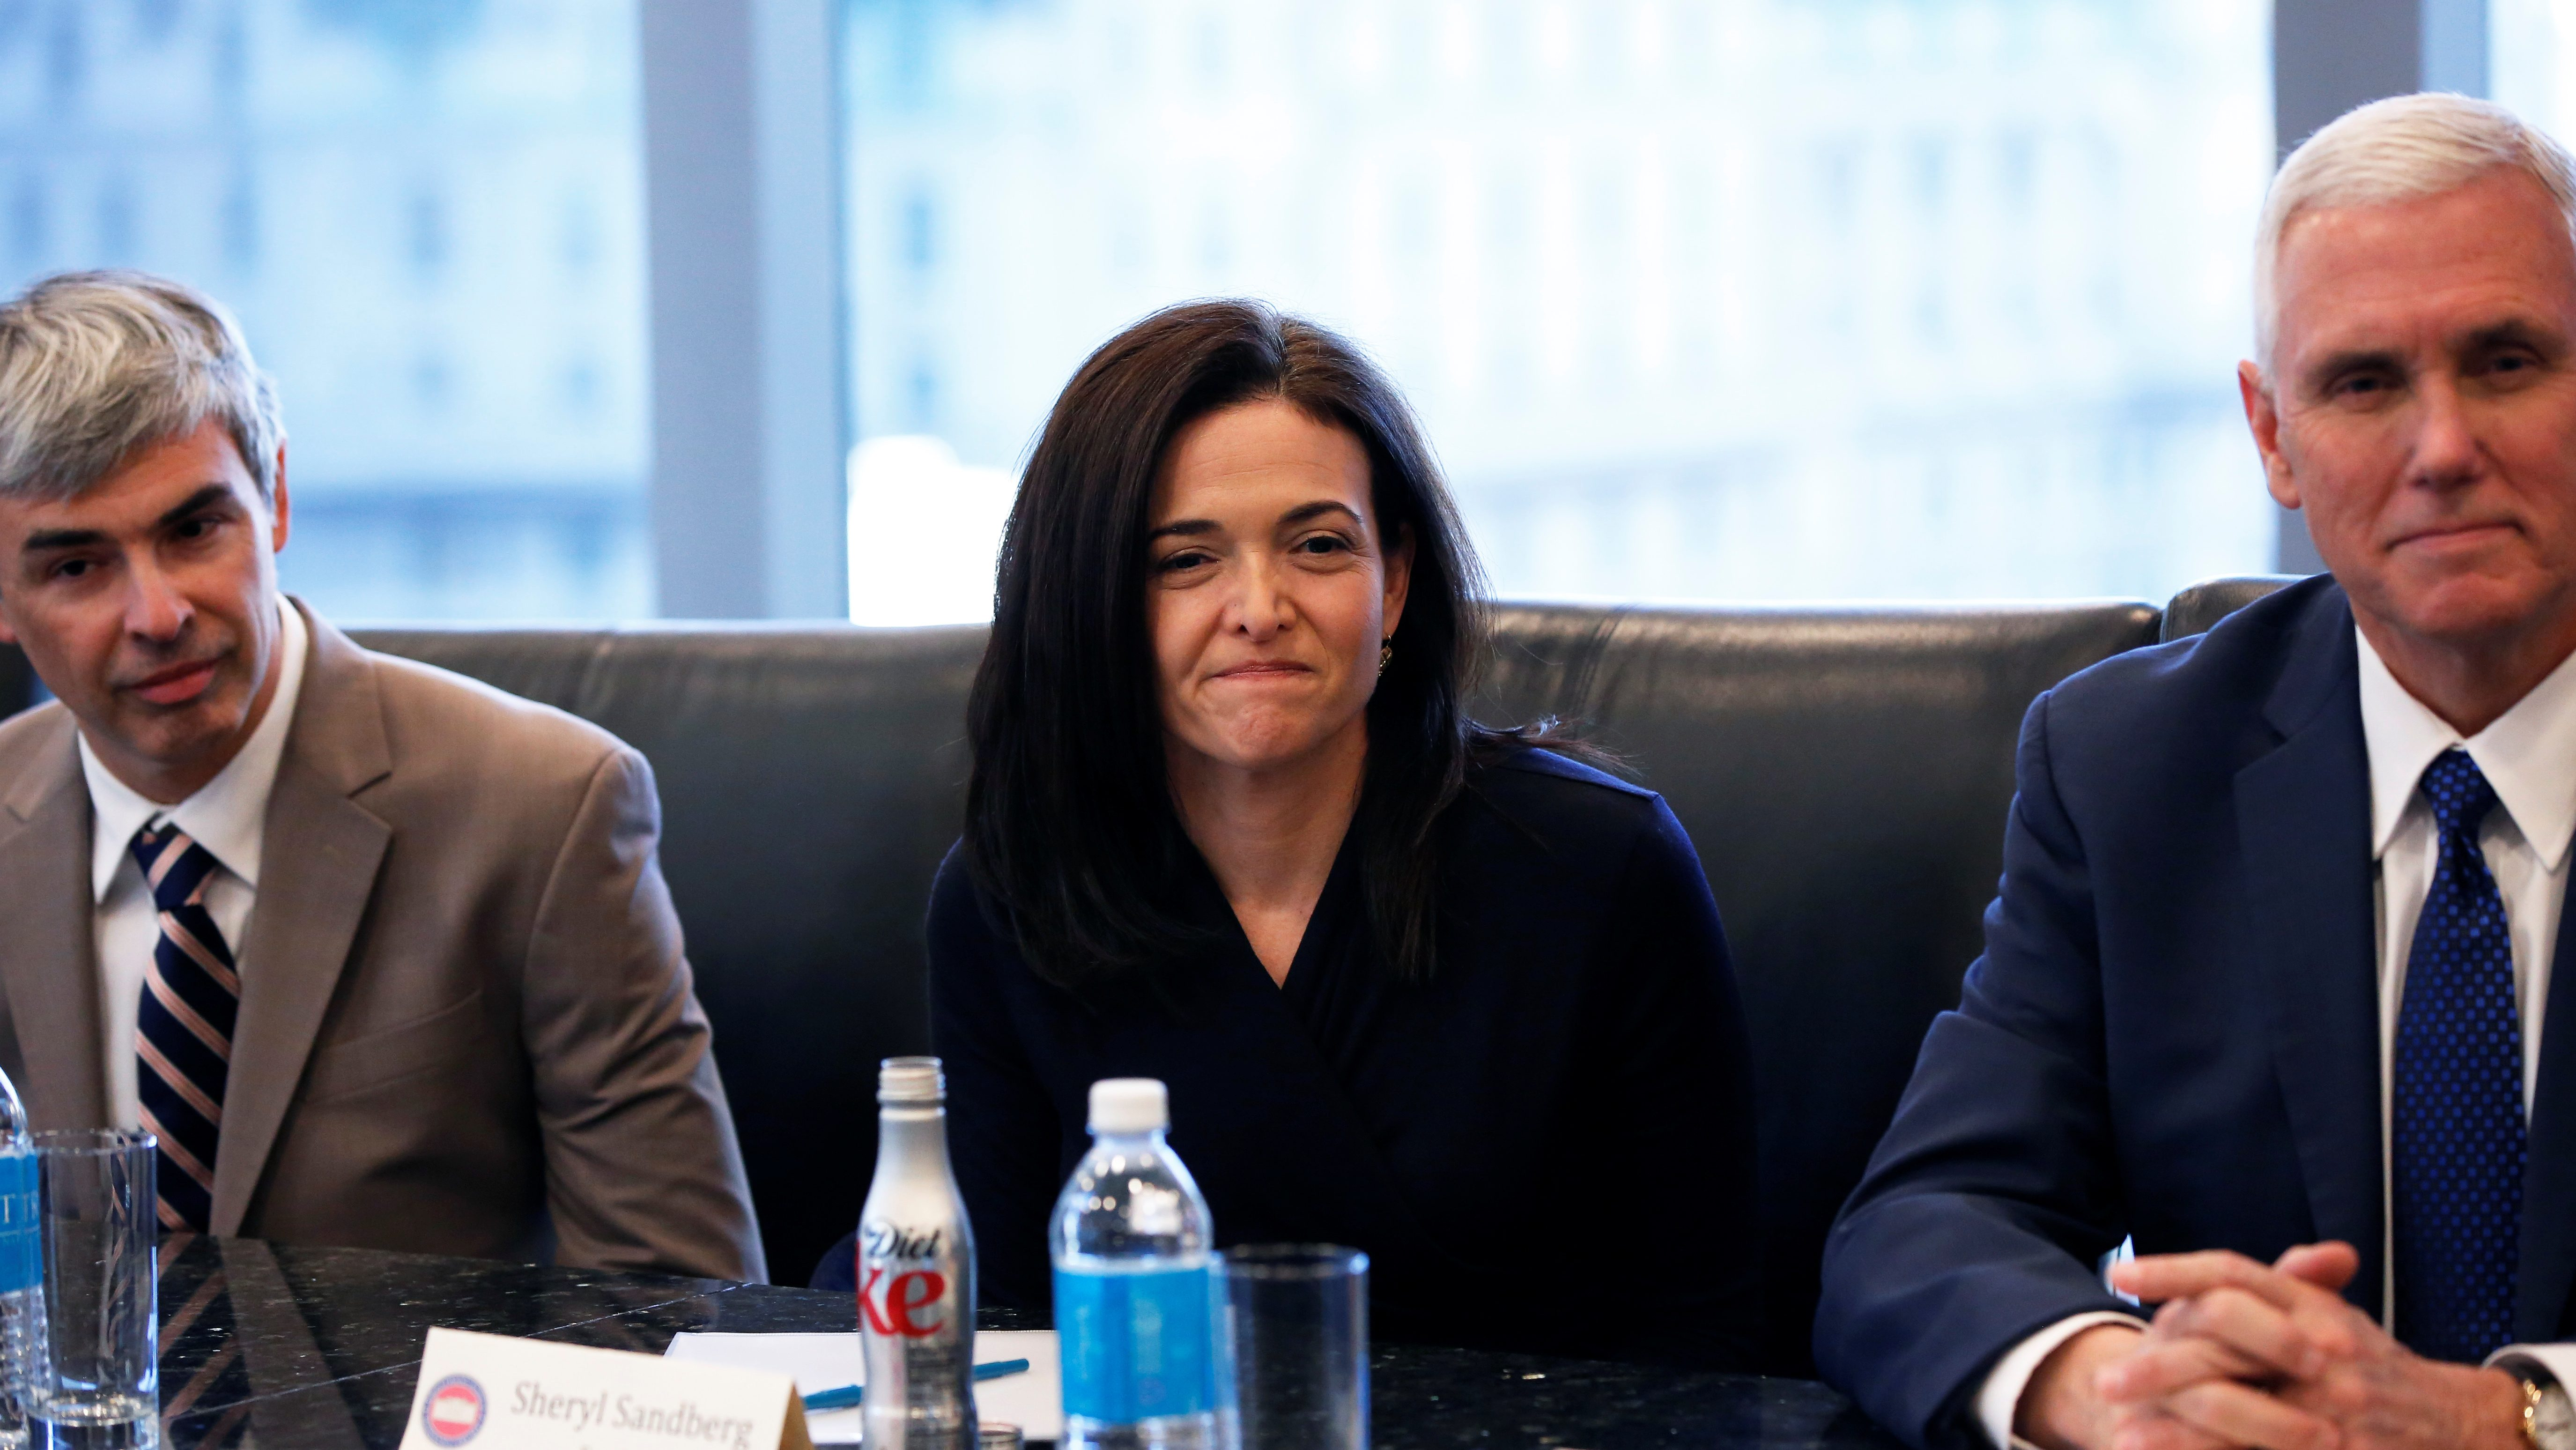 (L-R) Larry Page, CEO and Co-founder of Alphabet, Sheryl Sandberg, Chief Operating Officer of Facebook, and Vice President-elect Mike Pence sit during a meeting with U.S. President-elect Donald Trump and technology leaders at Trump Tower in New York U.S., December 14, 2016. REUTERS/Shannon Stapleton - RTX2V2C5